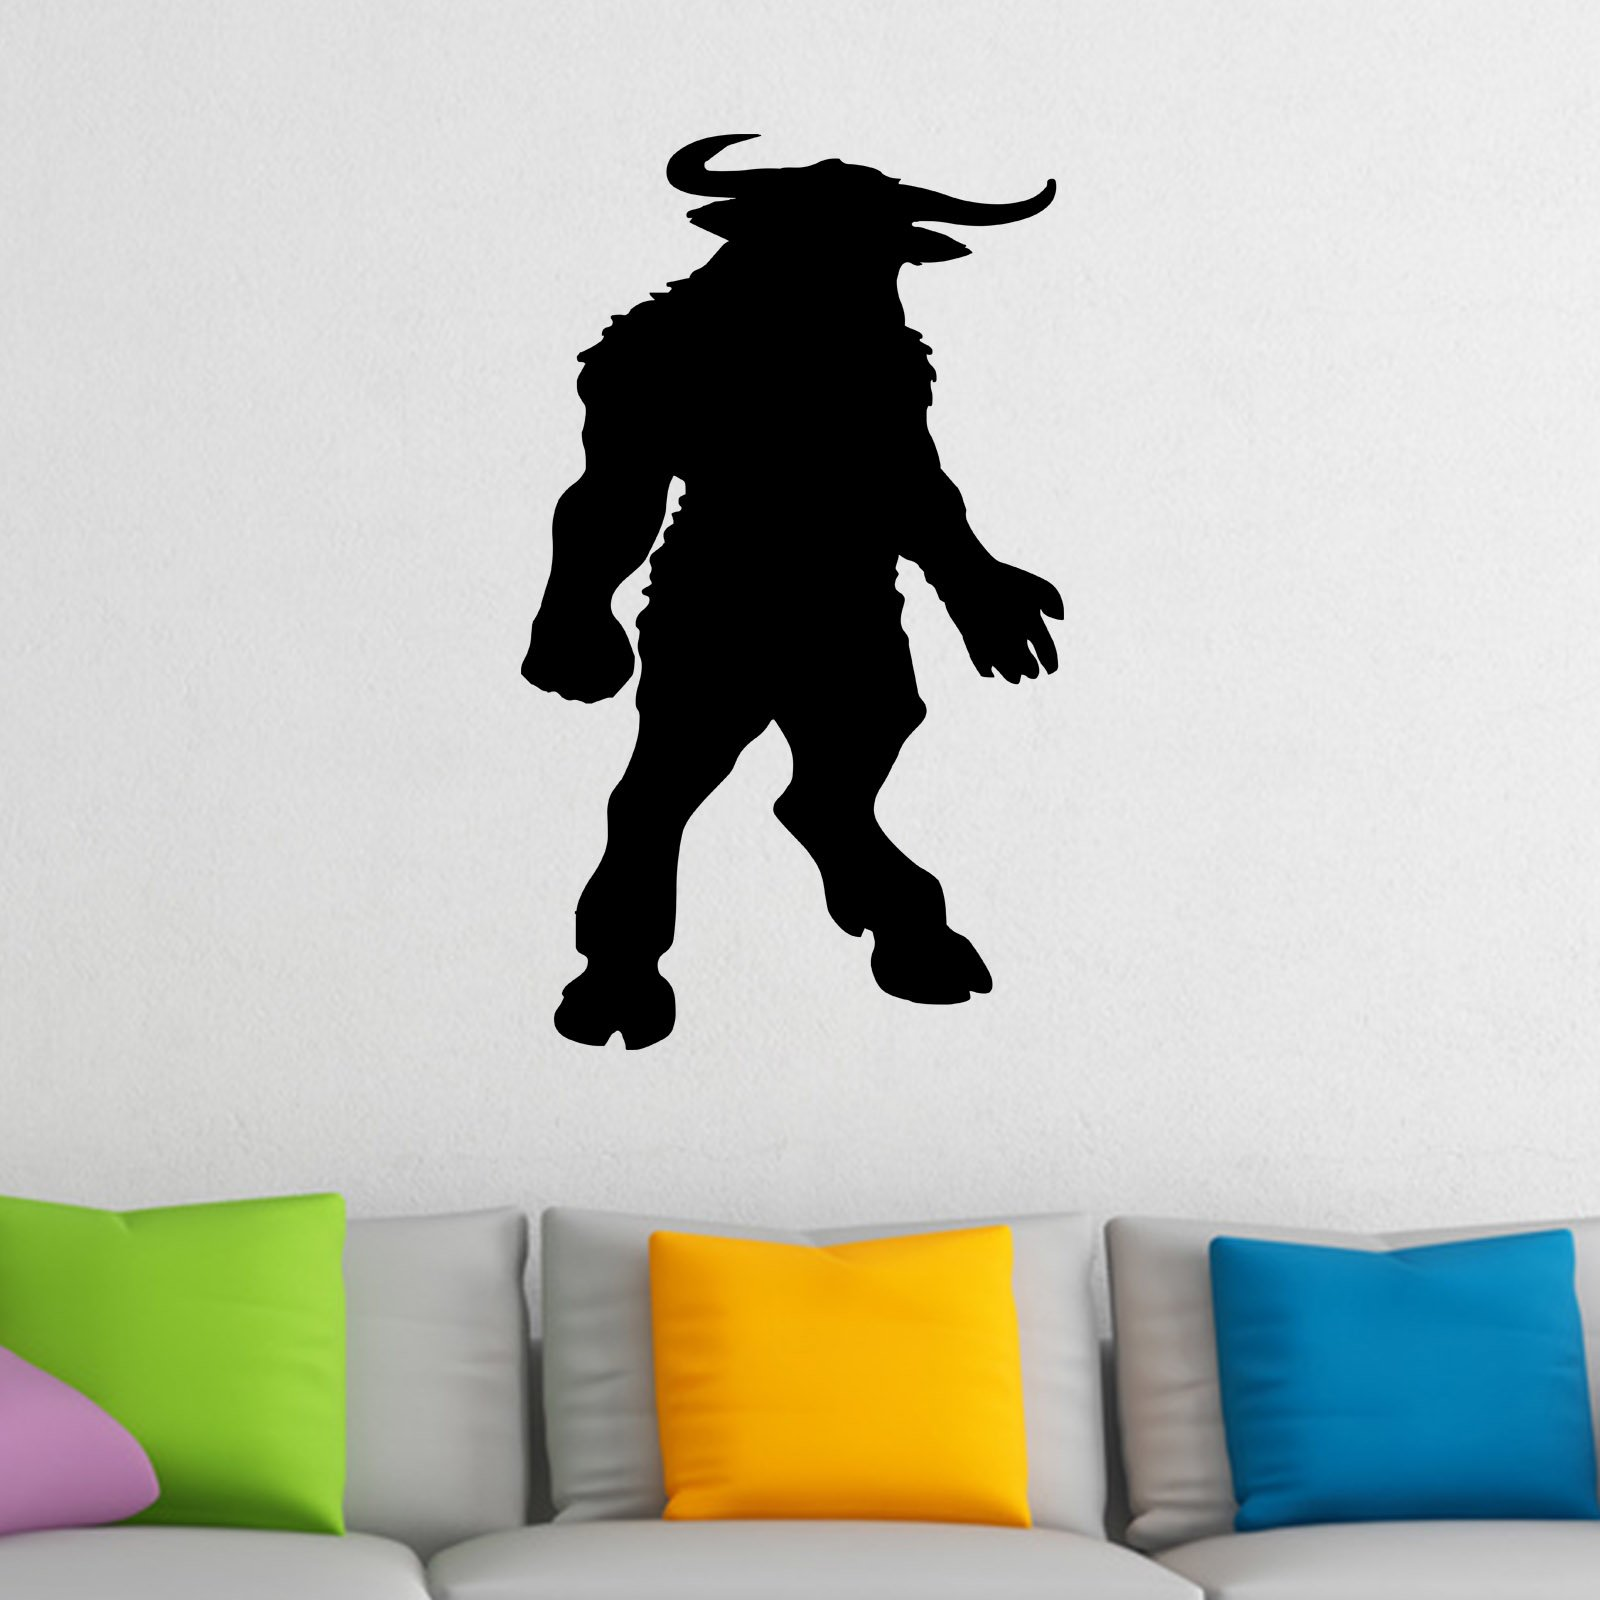 Minotaur mythical creature silhouette wall sticker world of wall minotaur mythical creature silhouette wall sticker decal a amipublicfo Image collections